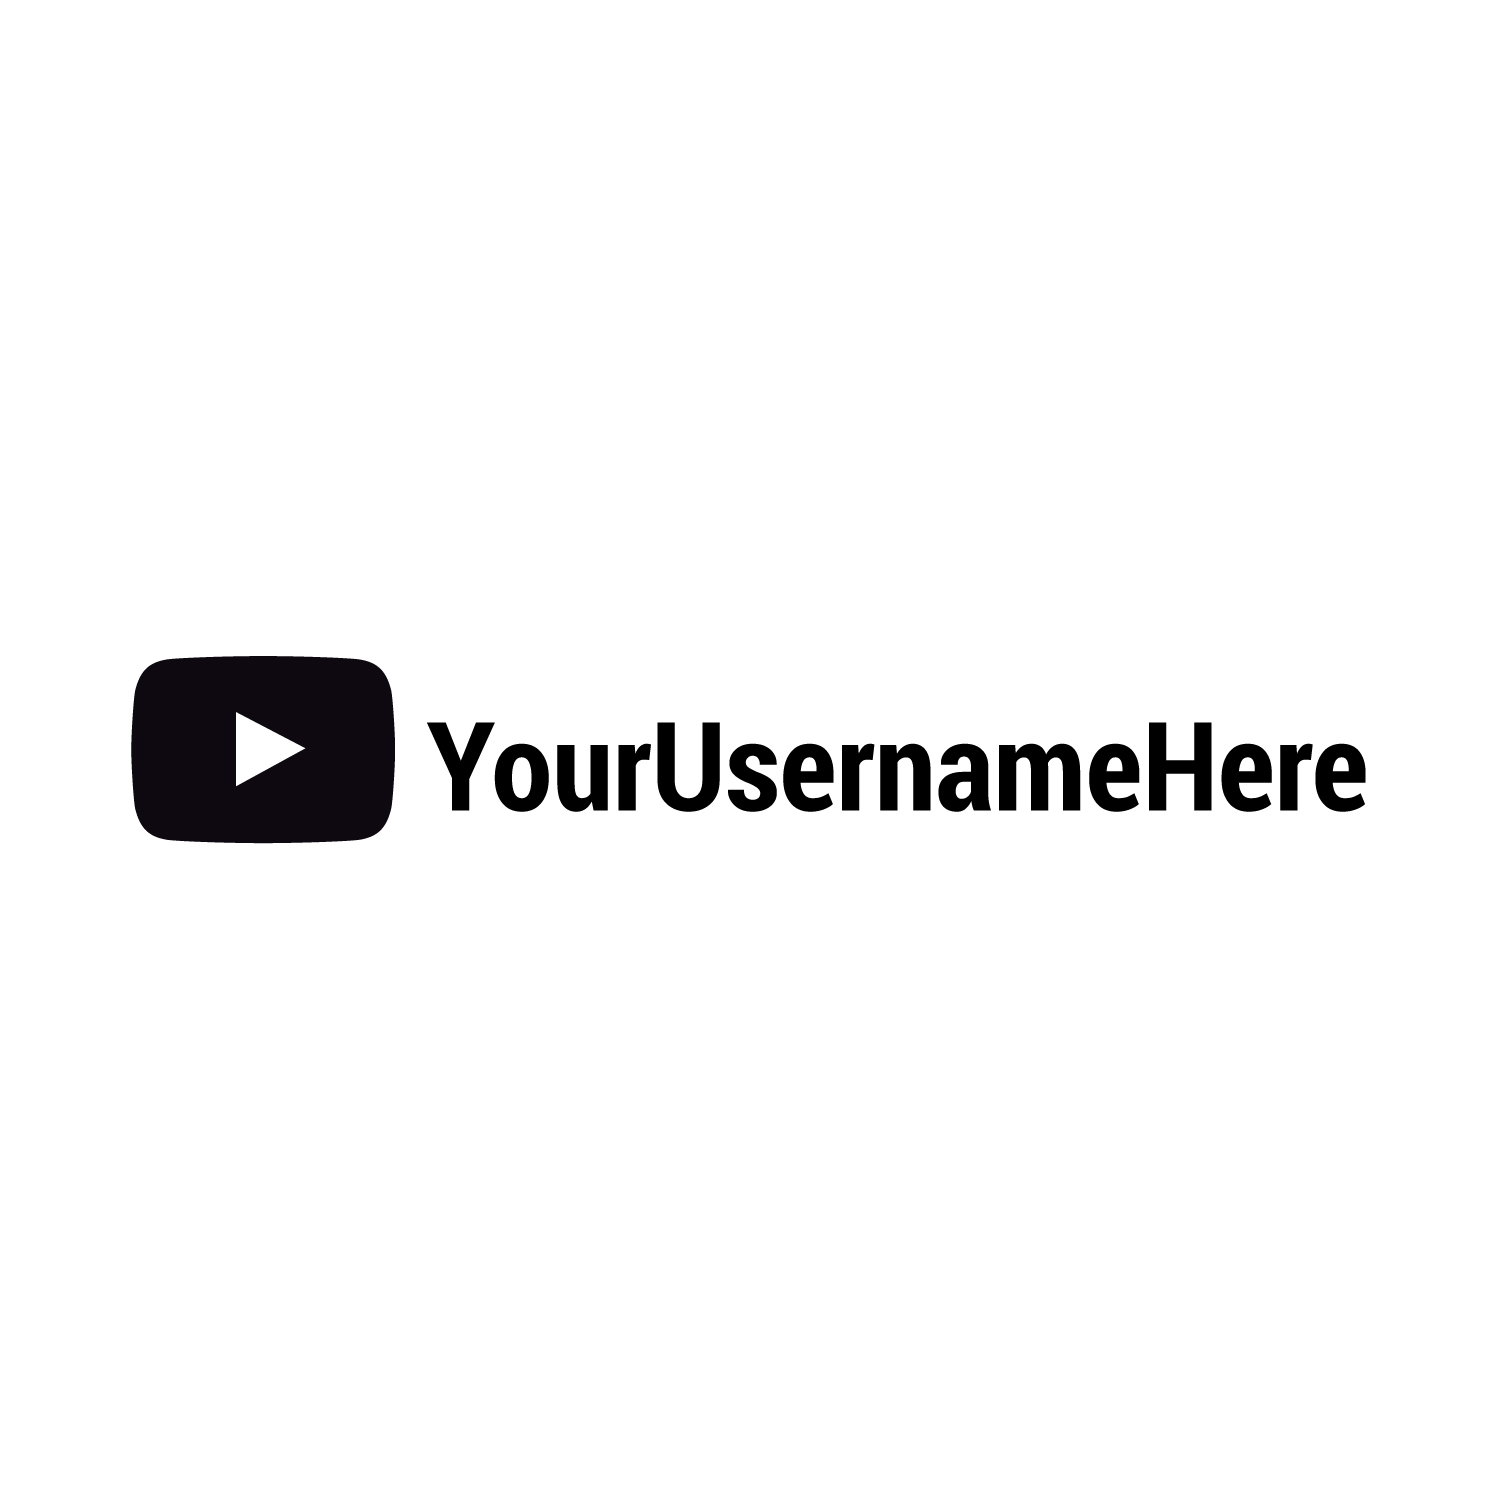 Custom youtube name personalised car sticker decal jdm prostreet